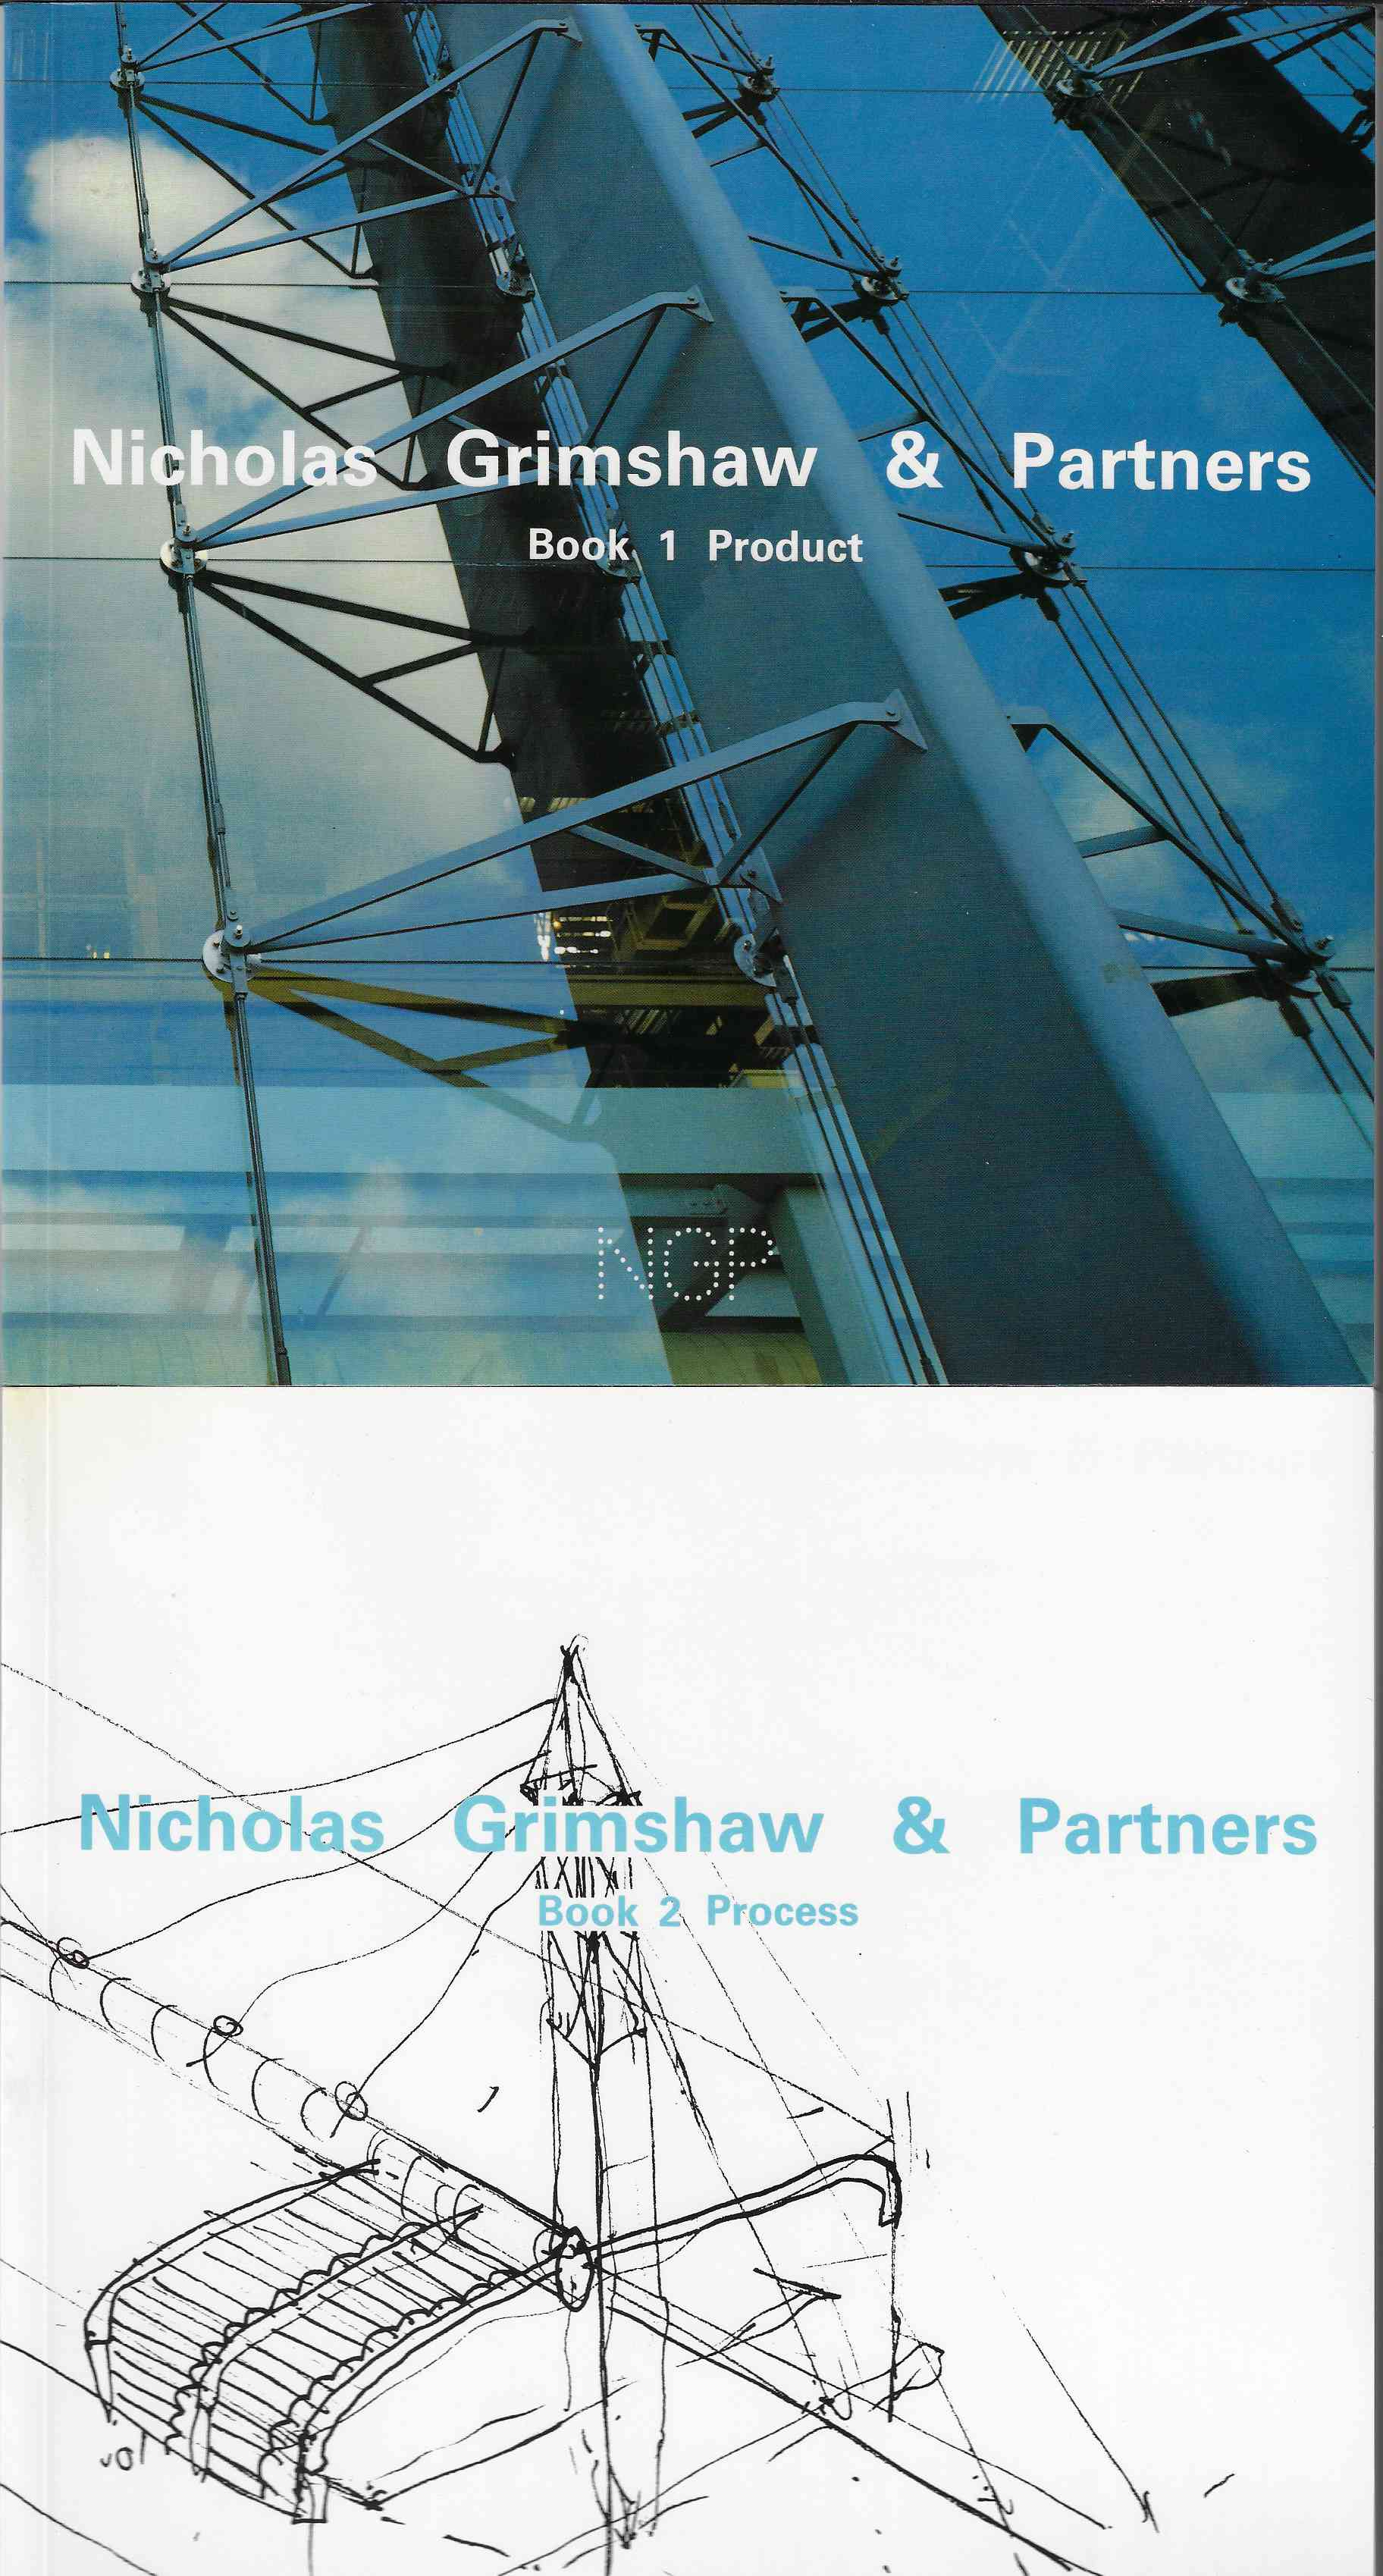 Image for Nicholas Grimshaw & Partners [signed] Book 1 Product and Book 2 Process